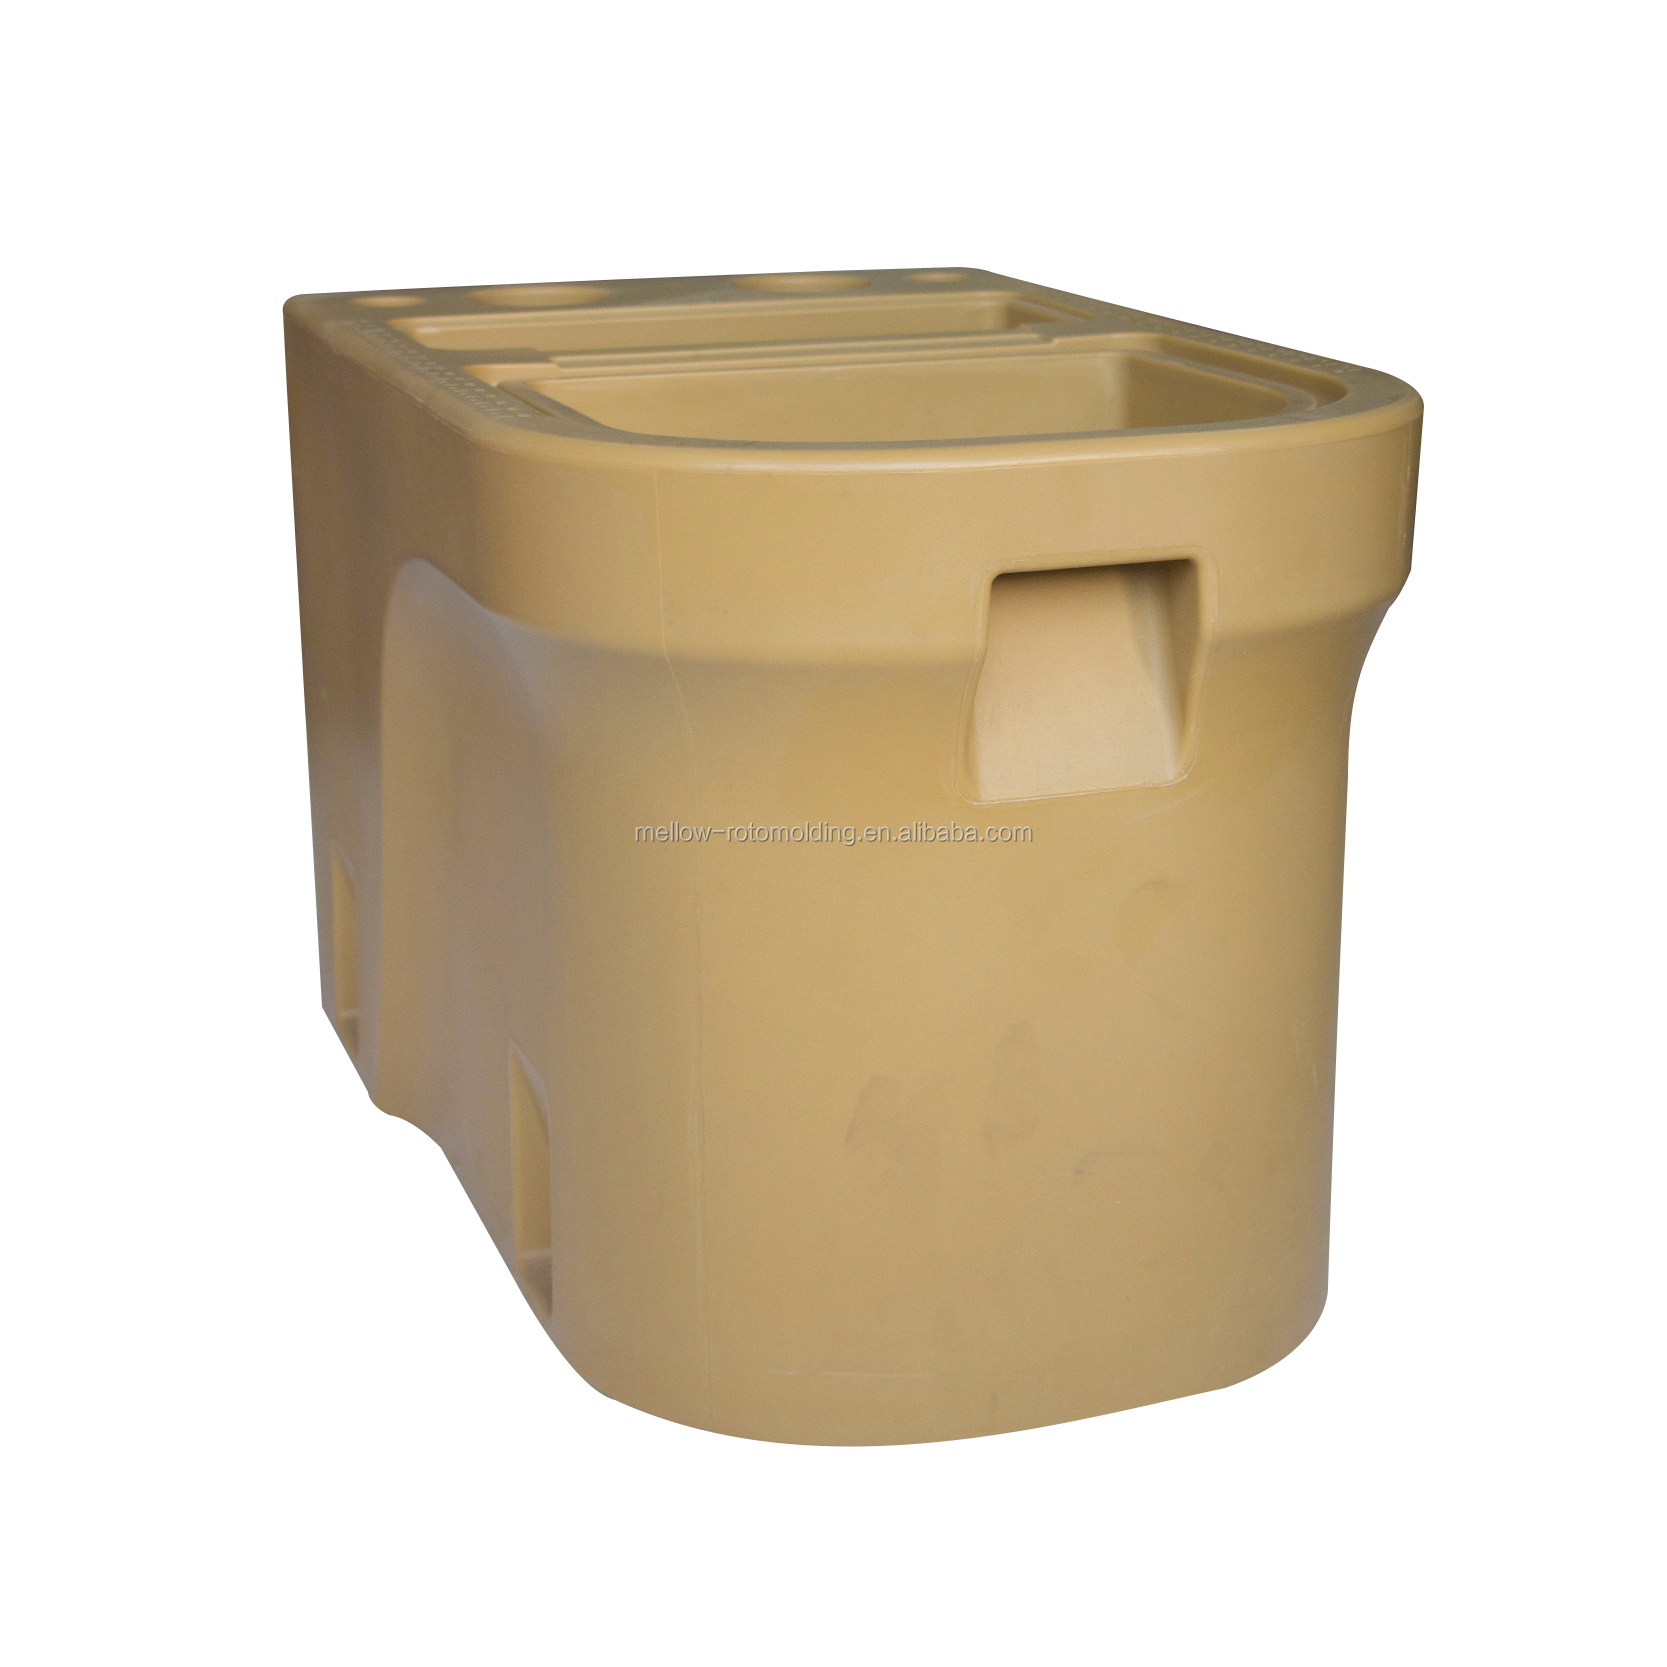 mellow customized fishing food storage bin for boat